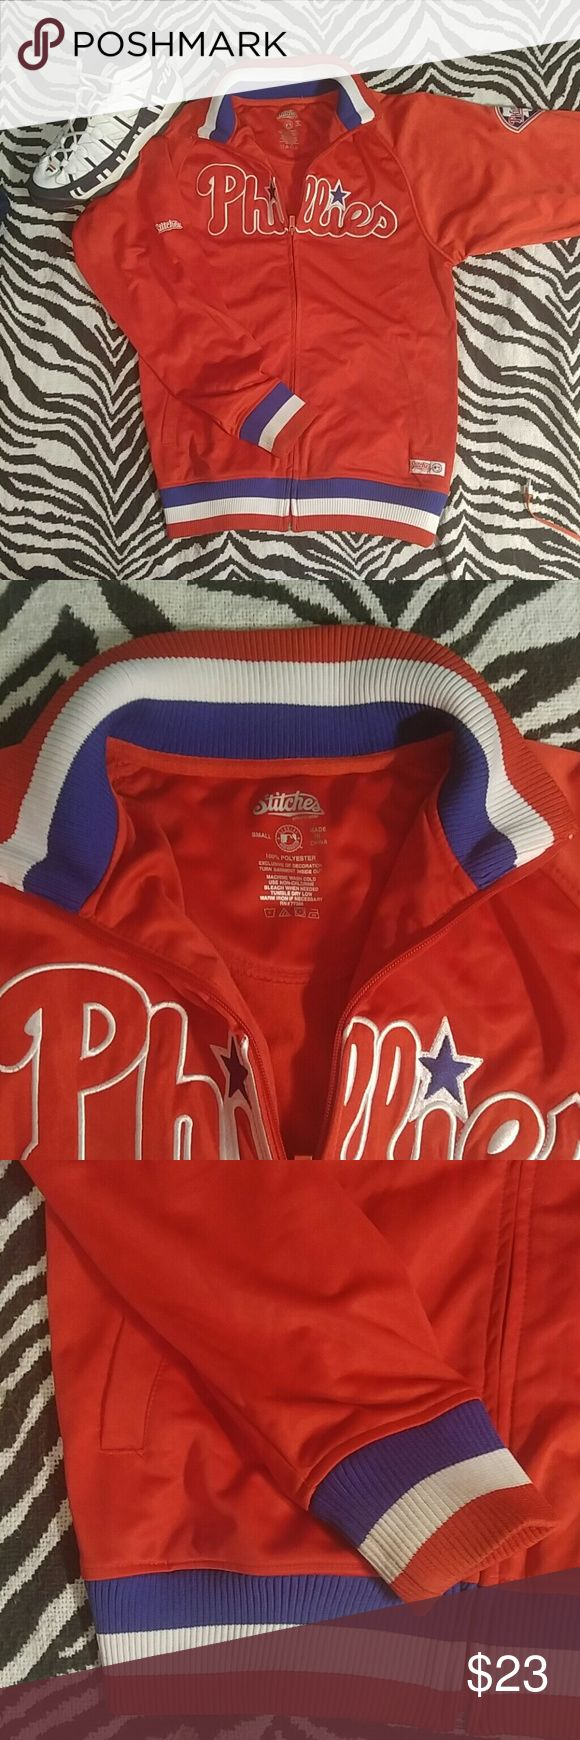 "Philadelphia Phillies dugout jacket S Beautiful Phillies jacket made by Stitches. This is officially licensed genuine MLB Merchandise in very nice condition. Light-medium weight with awesome embroidered logos. Men's size S Length 26"", Width 20"" Jackets & Coats"